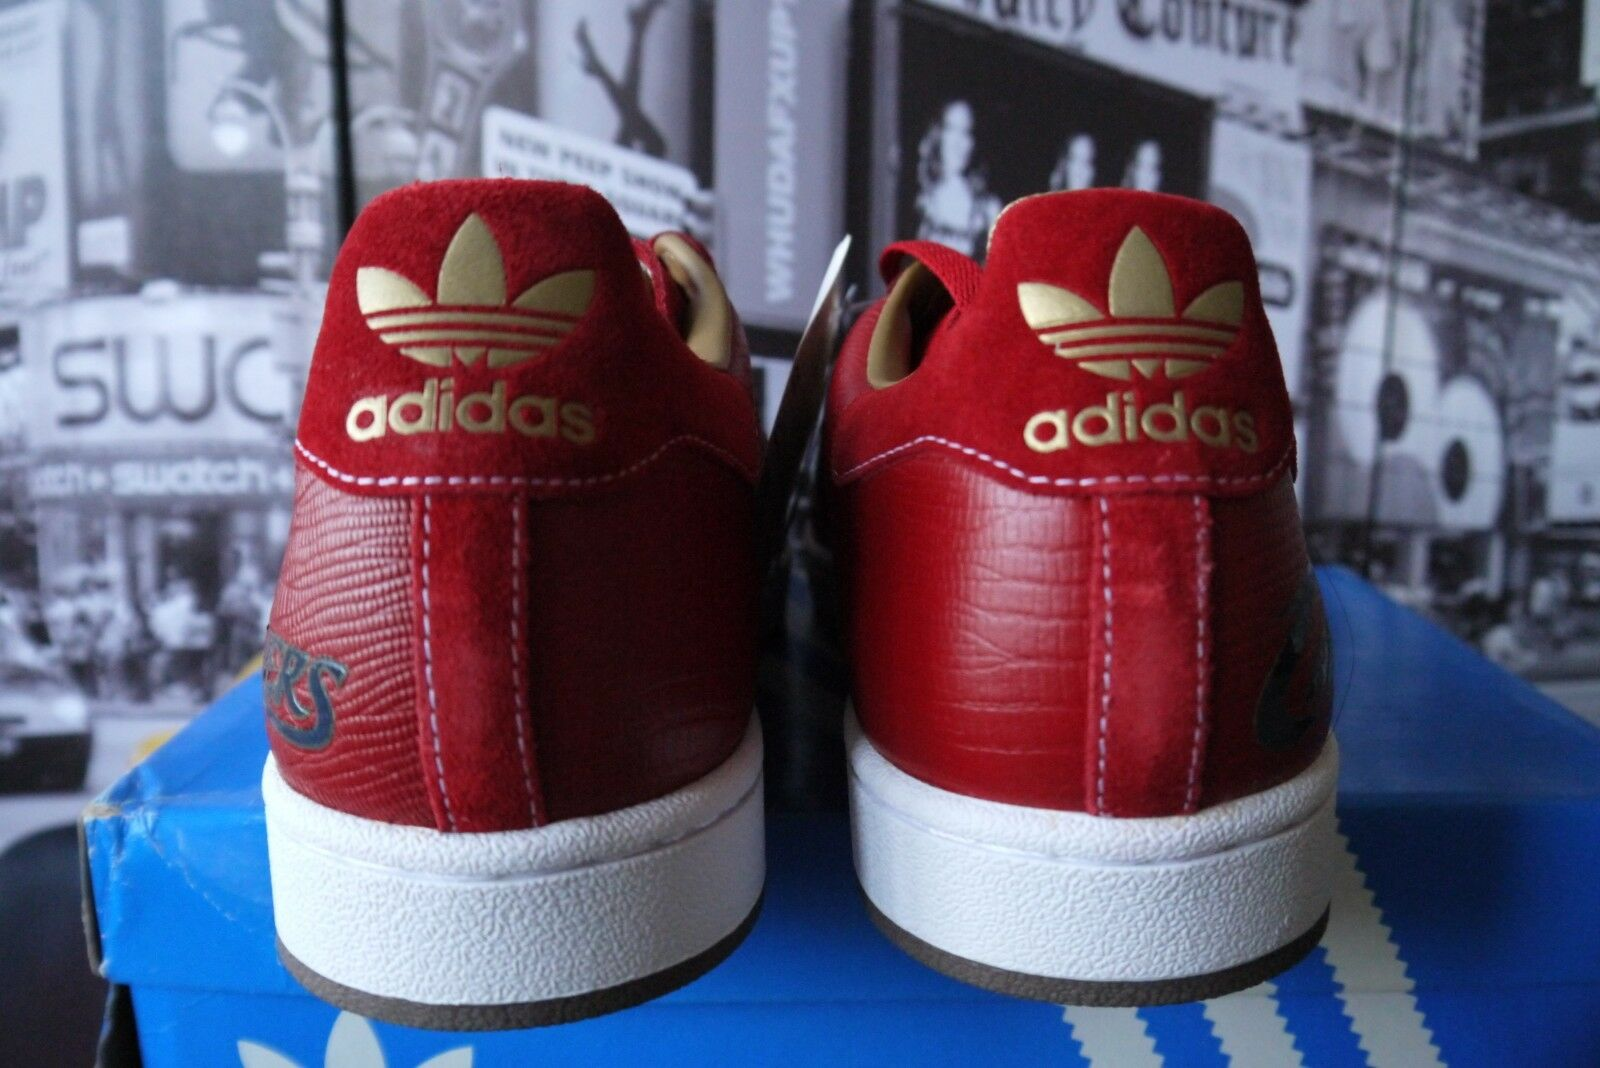 2006 ADIDAS SUPERSTAR 1 NBA CLEVELAND CAVALIERS CAVS Leather RED lizard US 12